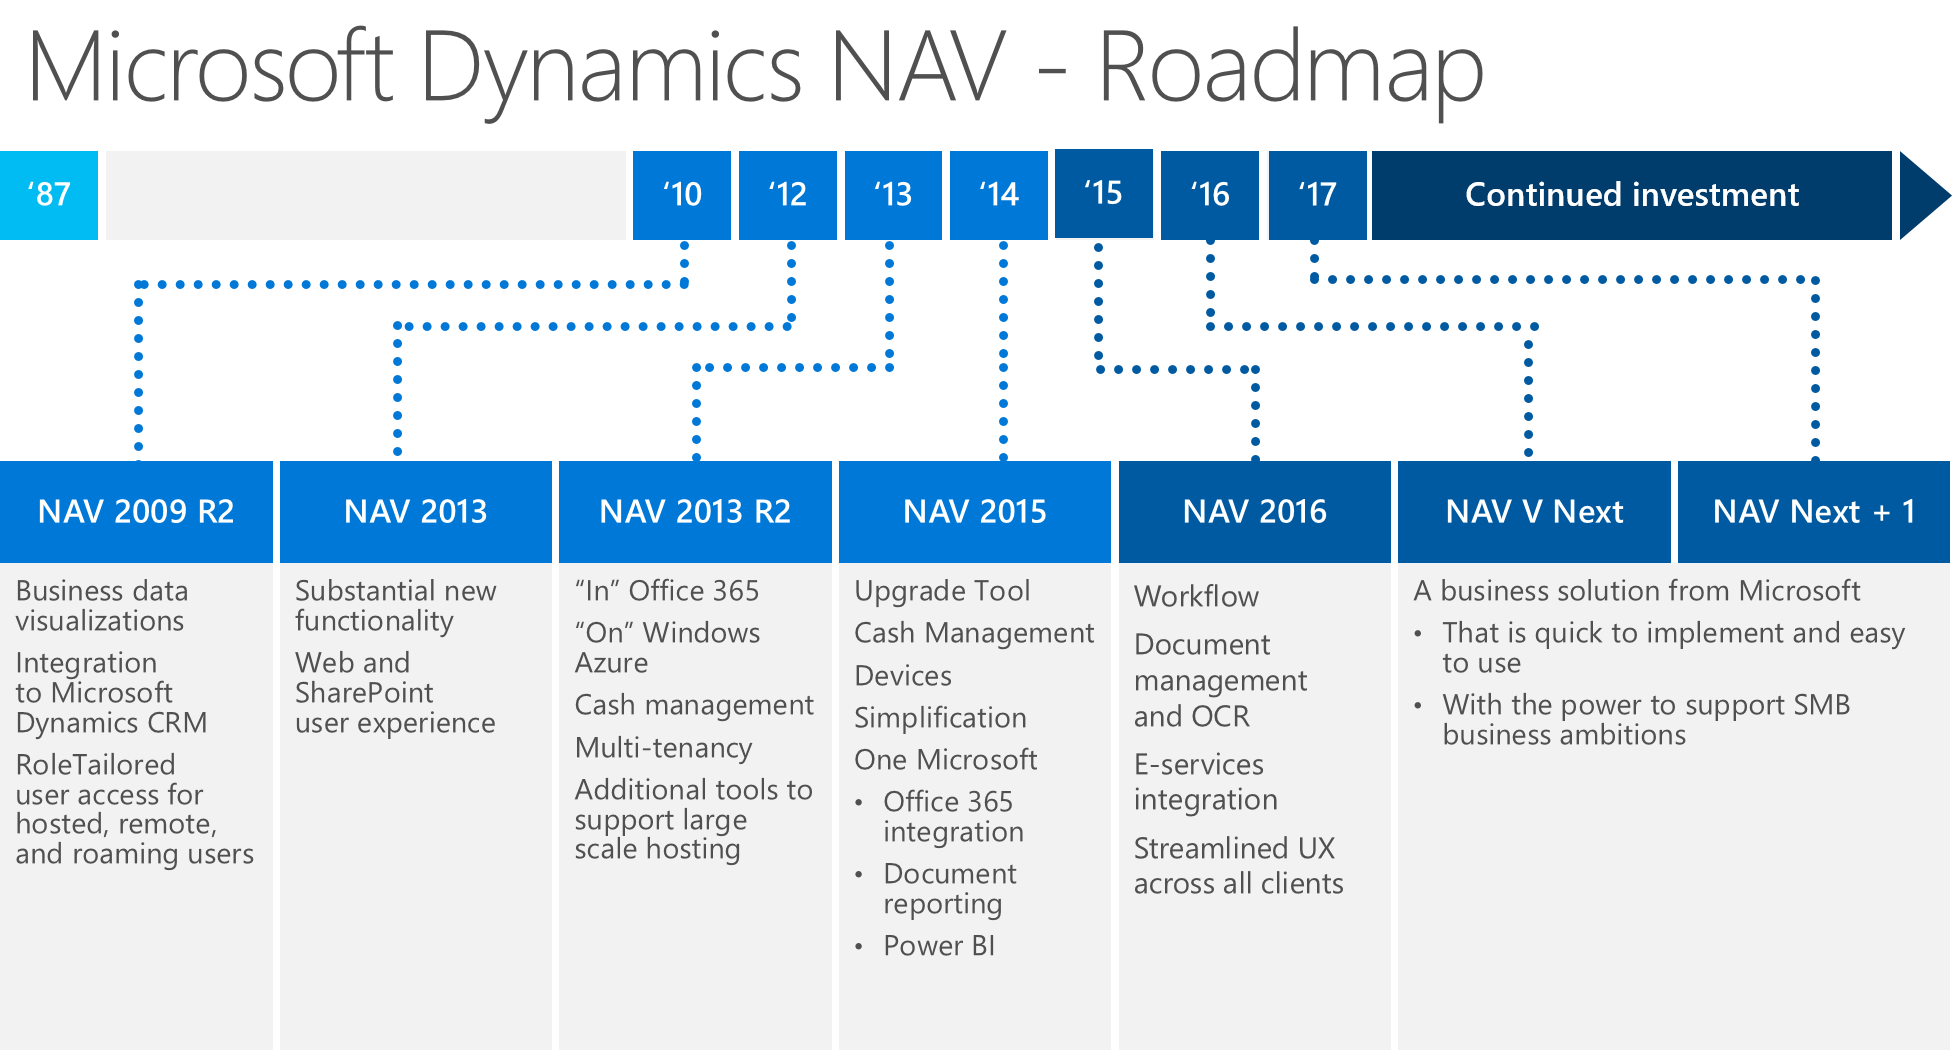 Microsoft Dynamics NAV Roadmap 2016